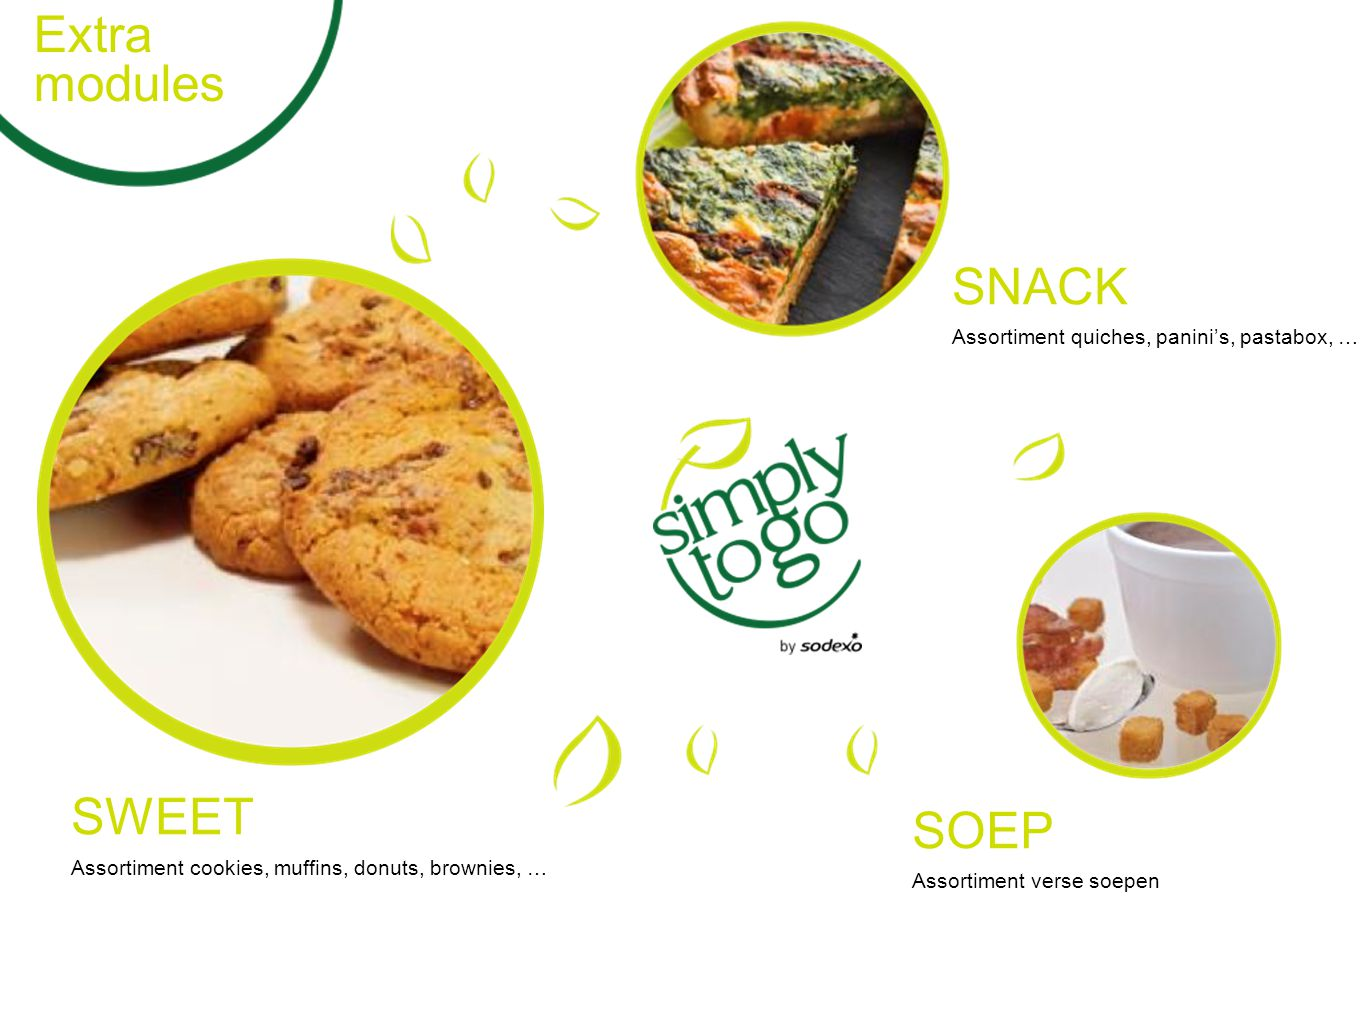 Extra modules SNACK Assortiment quiches, panini's, pastabox, … SWEET Assortiment cookies, muffins, donuts, brownies, … SOEP Assortiment verse soepen